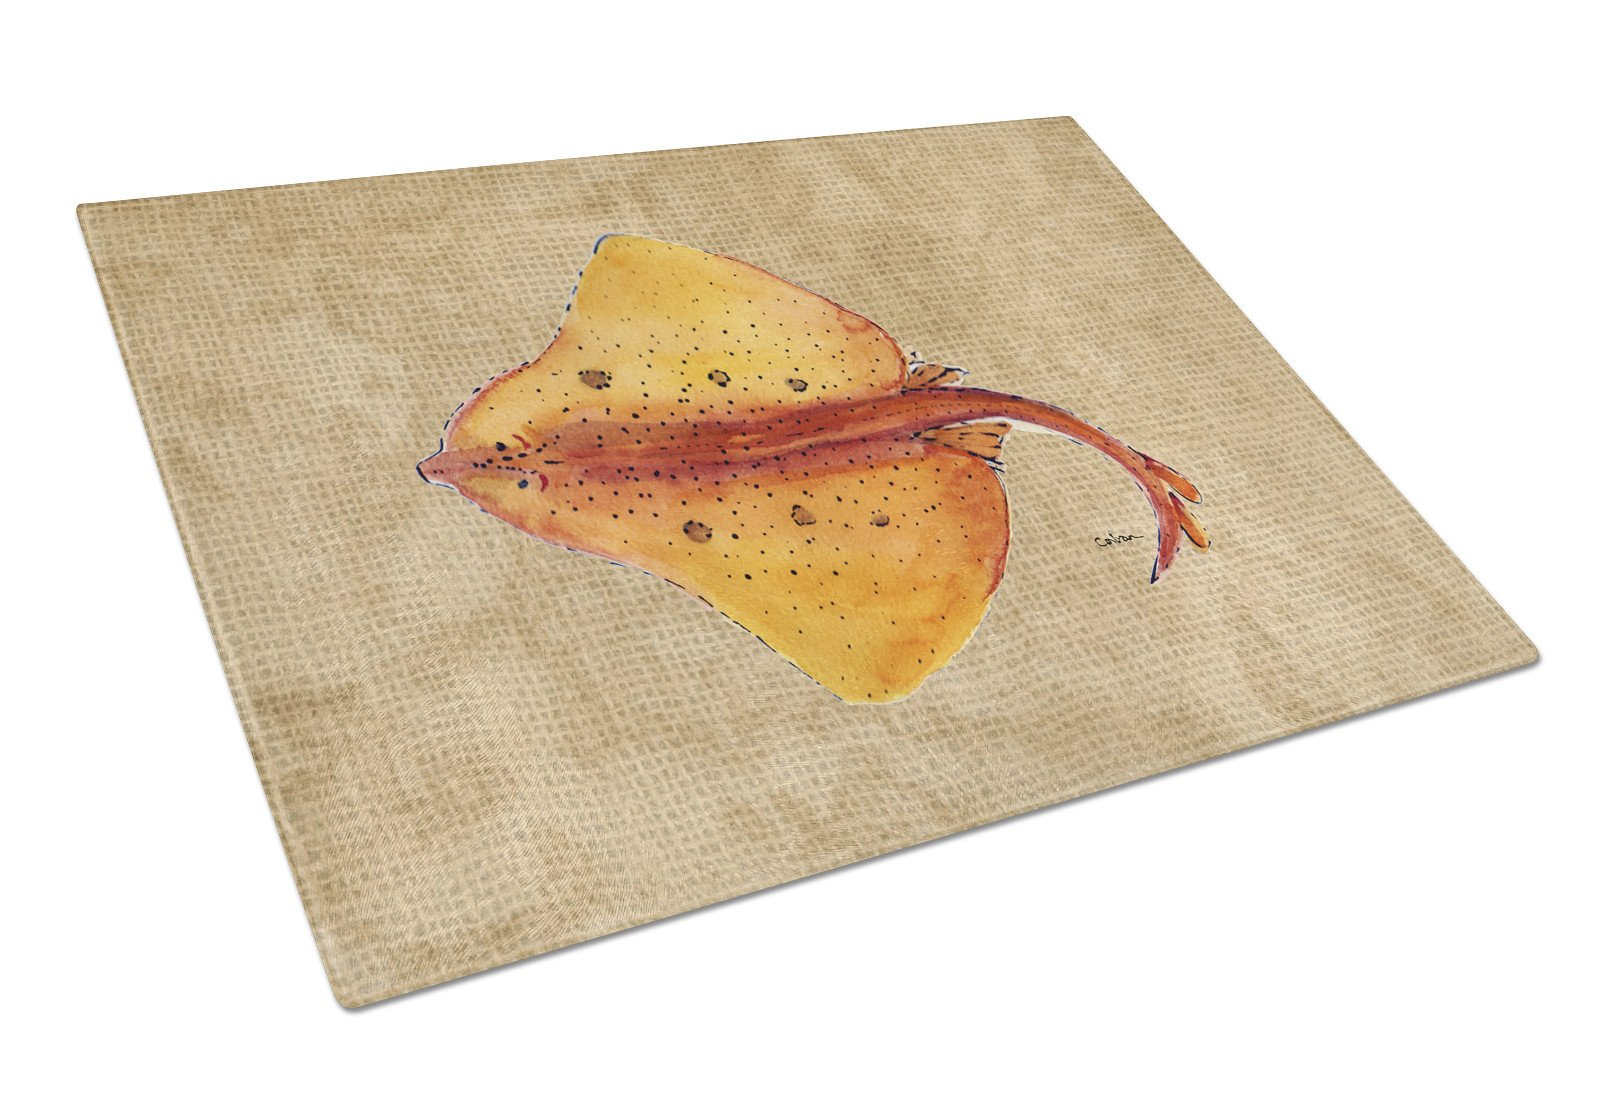 Blonde Ray Stingray Glass Cutting Board Large by Caroline's Treasures